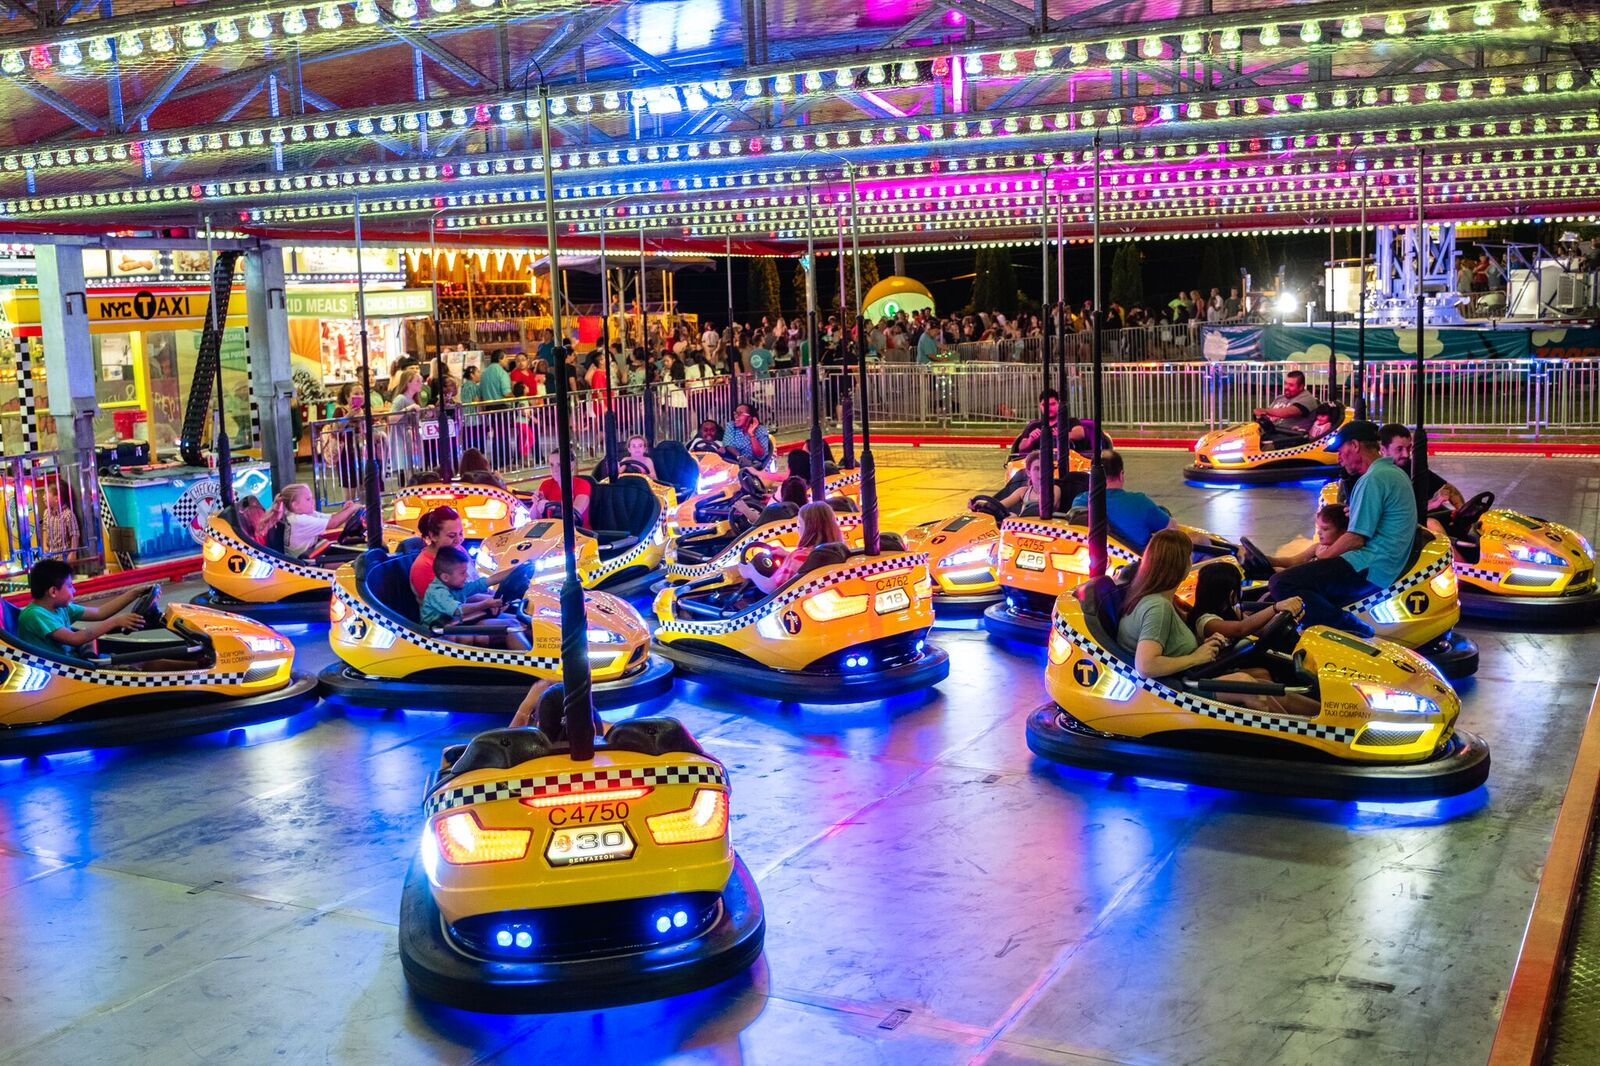 SATURDAY, OCTOBER 12 - FREE RIDES: 10AM - 11AM Pay One Price: 11AM - 3PM $30Unlimited Rides (per person) Valid until close.